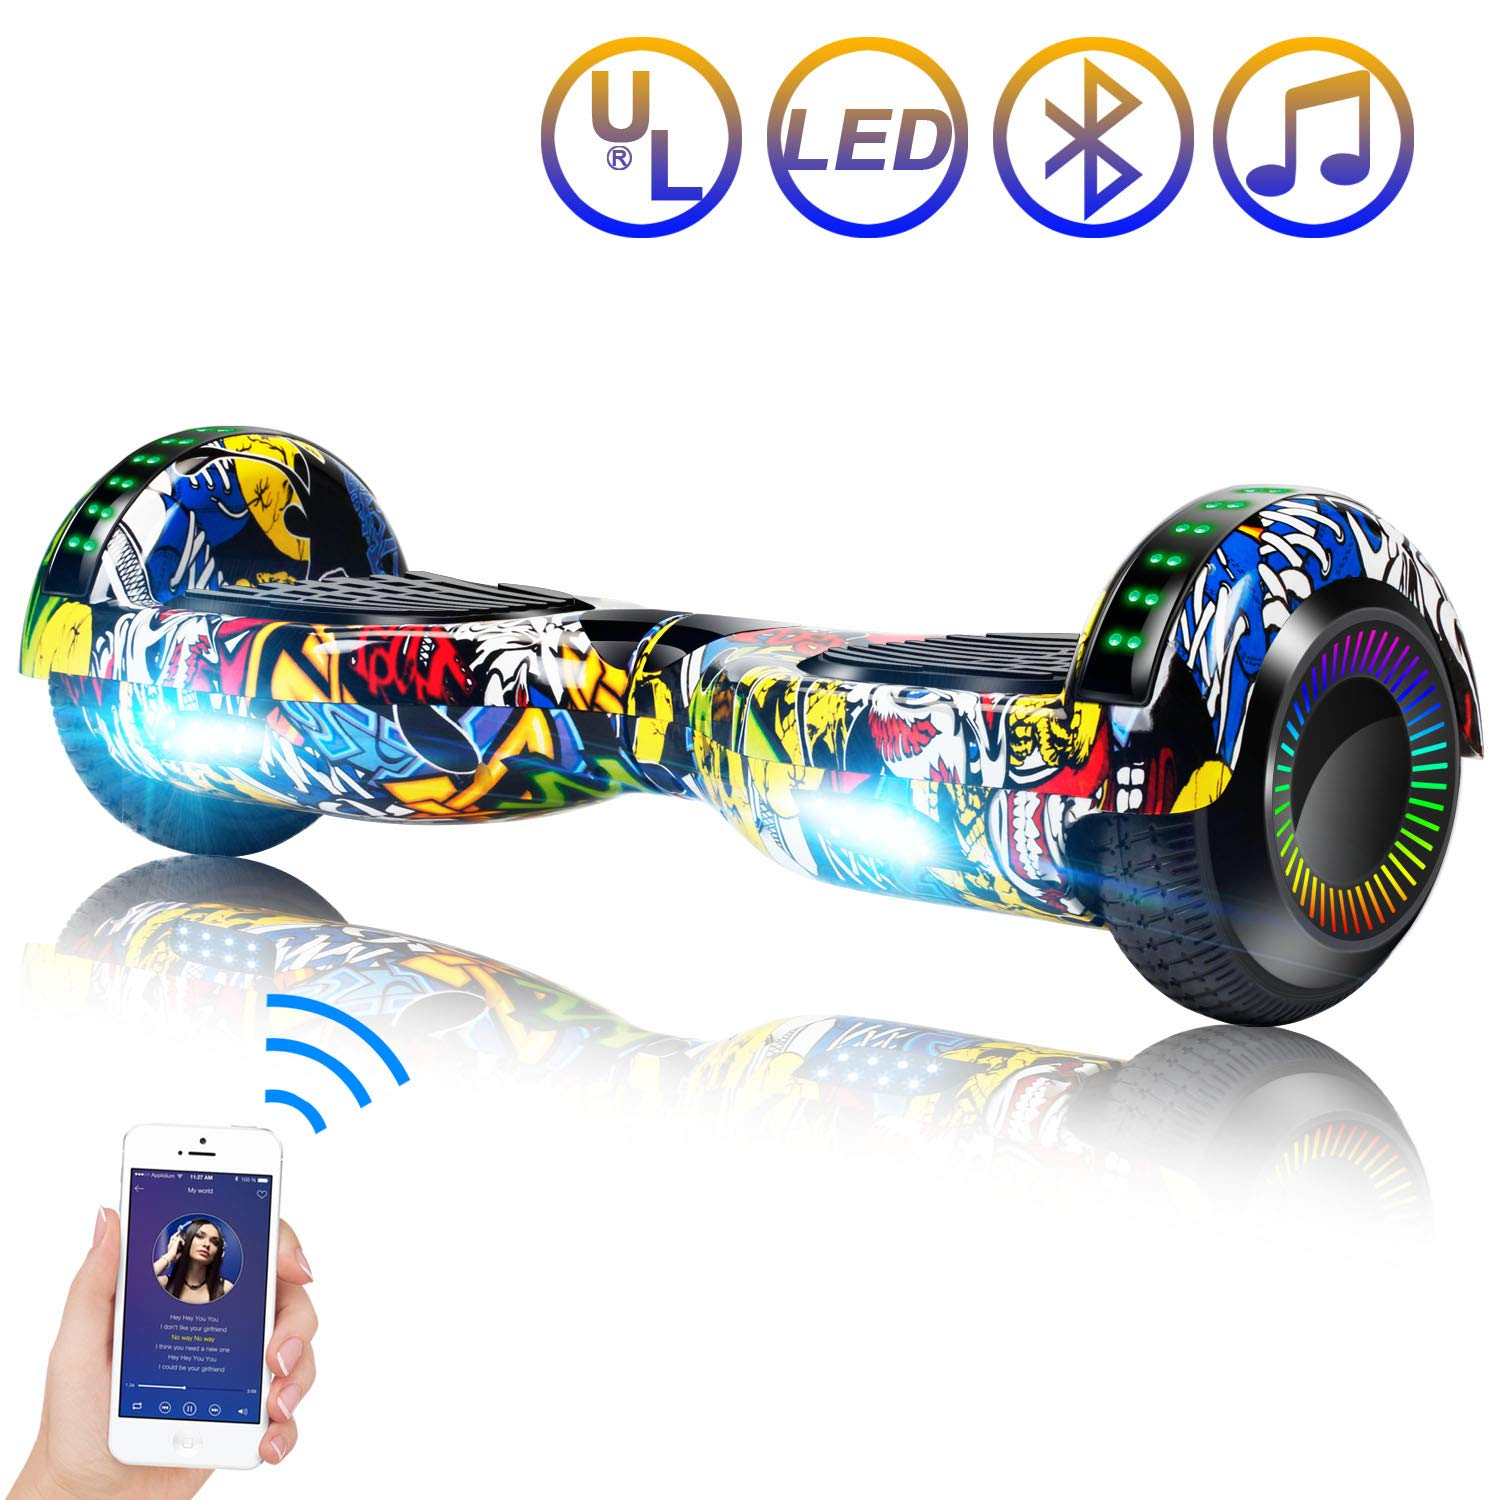 SISIGAD Hoverboard Self Balancing Scooter 6.5'' Two-Wheel Self Balancing Hoverboard with Bluetooth Speaker and LED Lights Electric Scooter for Adult Kids Gift UL 2272 Certified Fun Edition - Graffiti